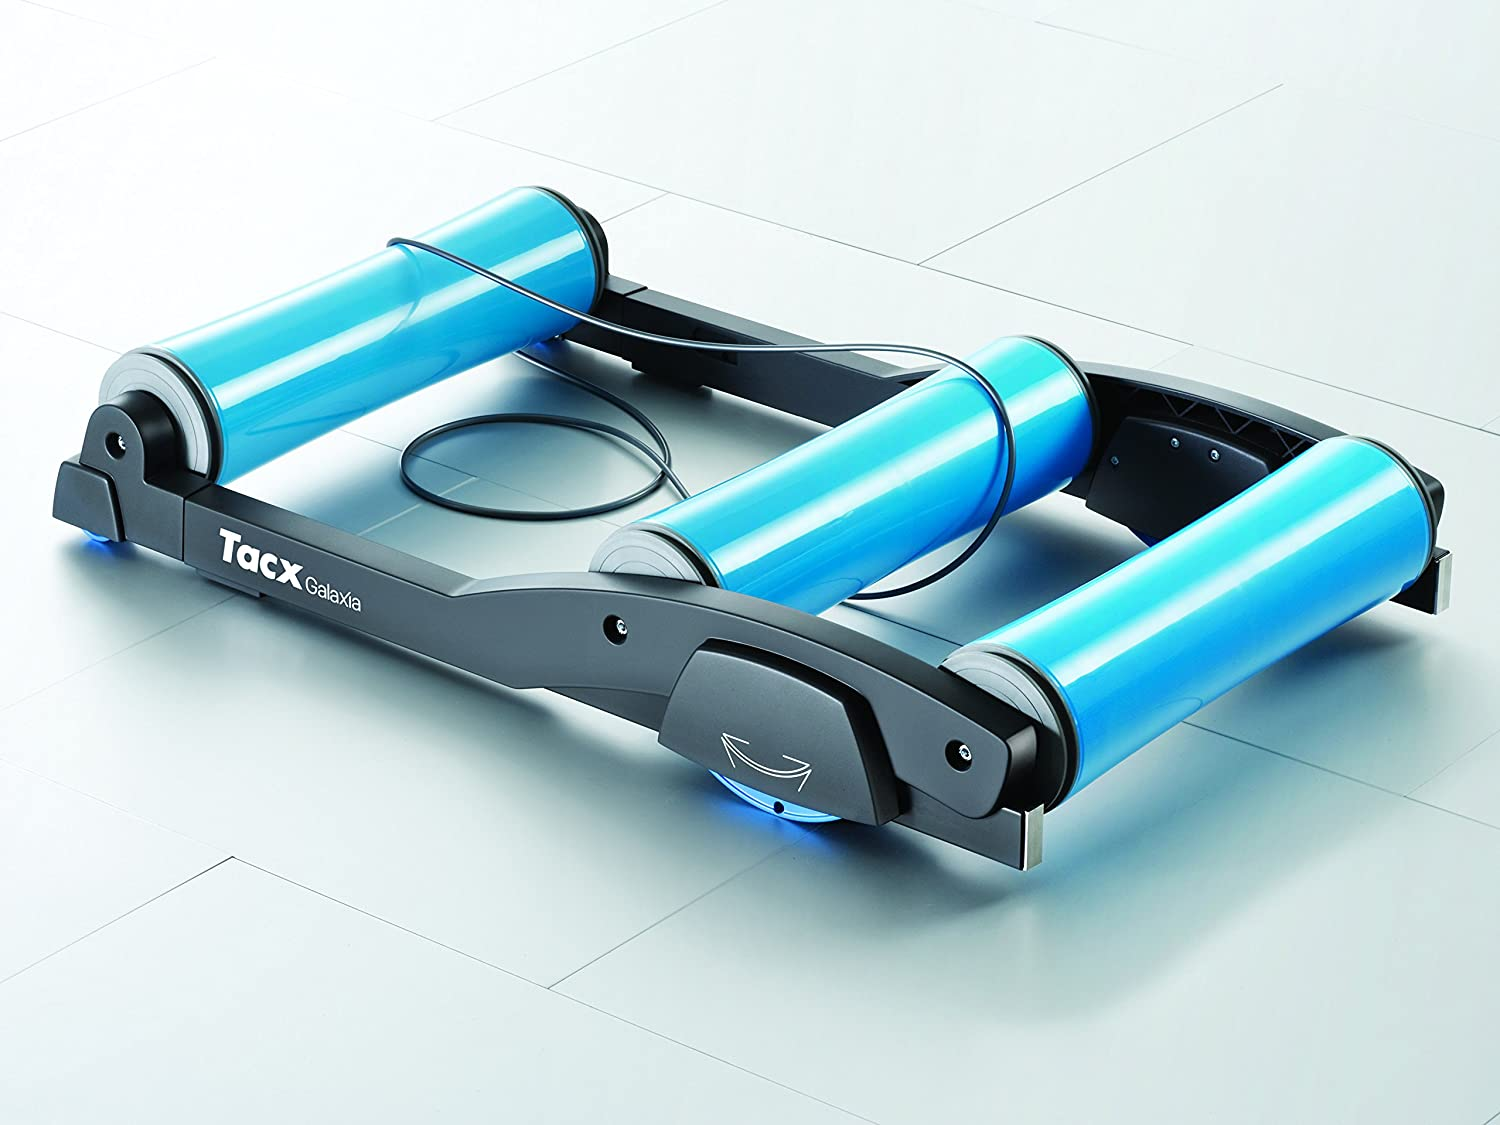 Tacx Roller Galaxia 2016